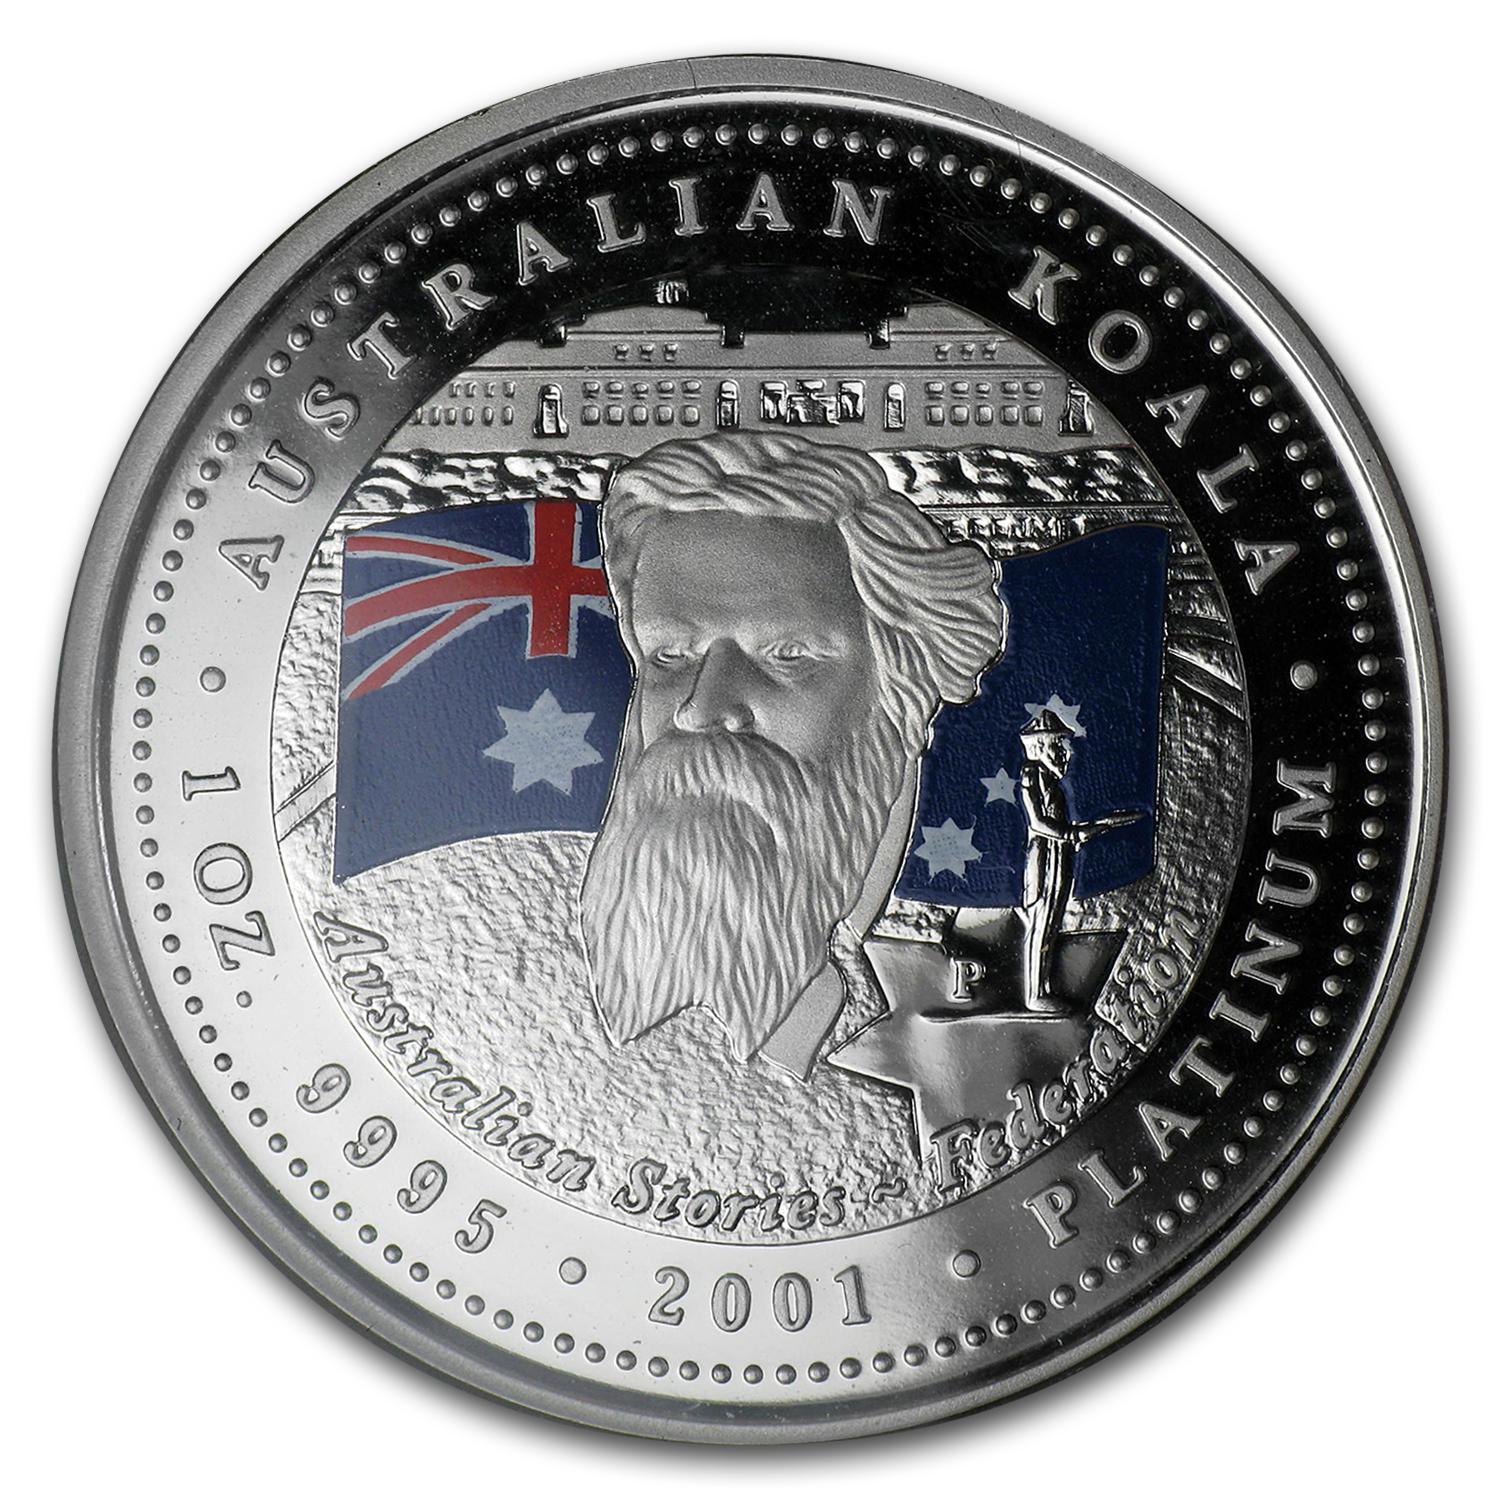 2001 5-Coin Proof Australian Platinum Koala Set (1.9 oz)